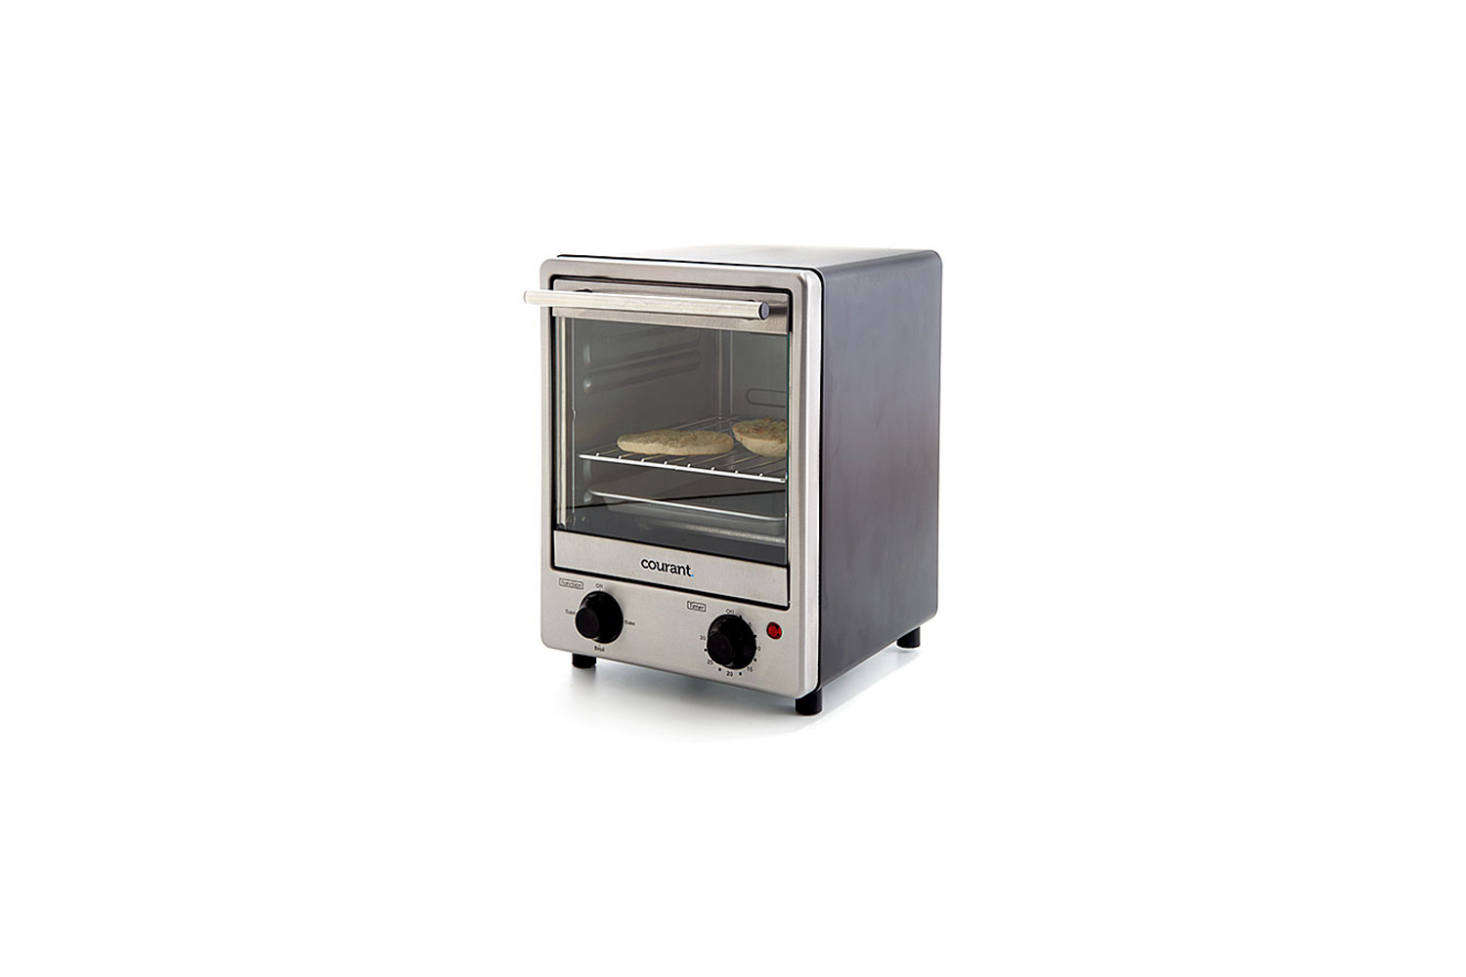 The straightforward Courant Stainless Steel Toaster Oven is src=